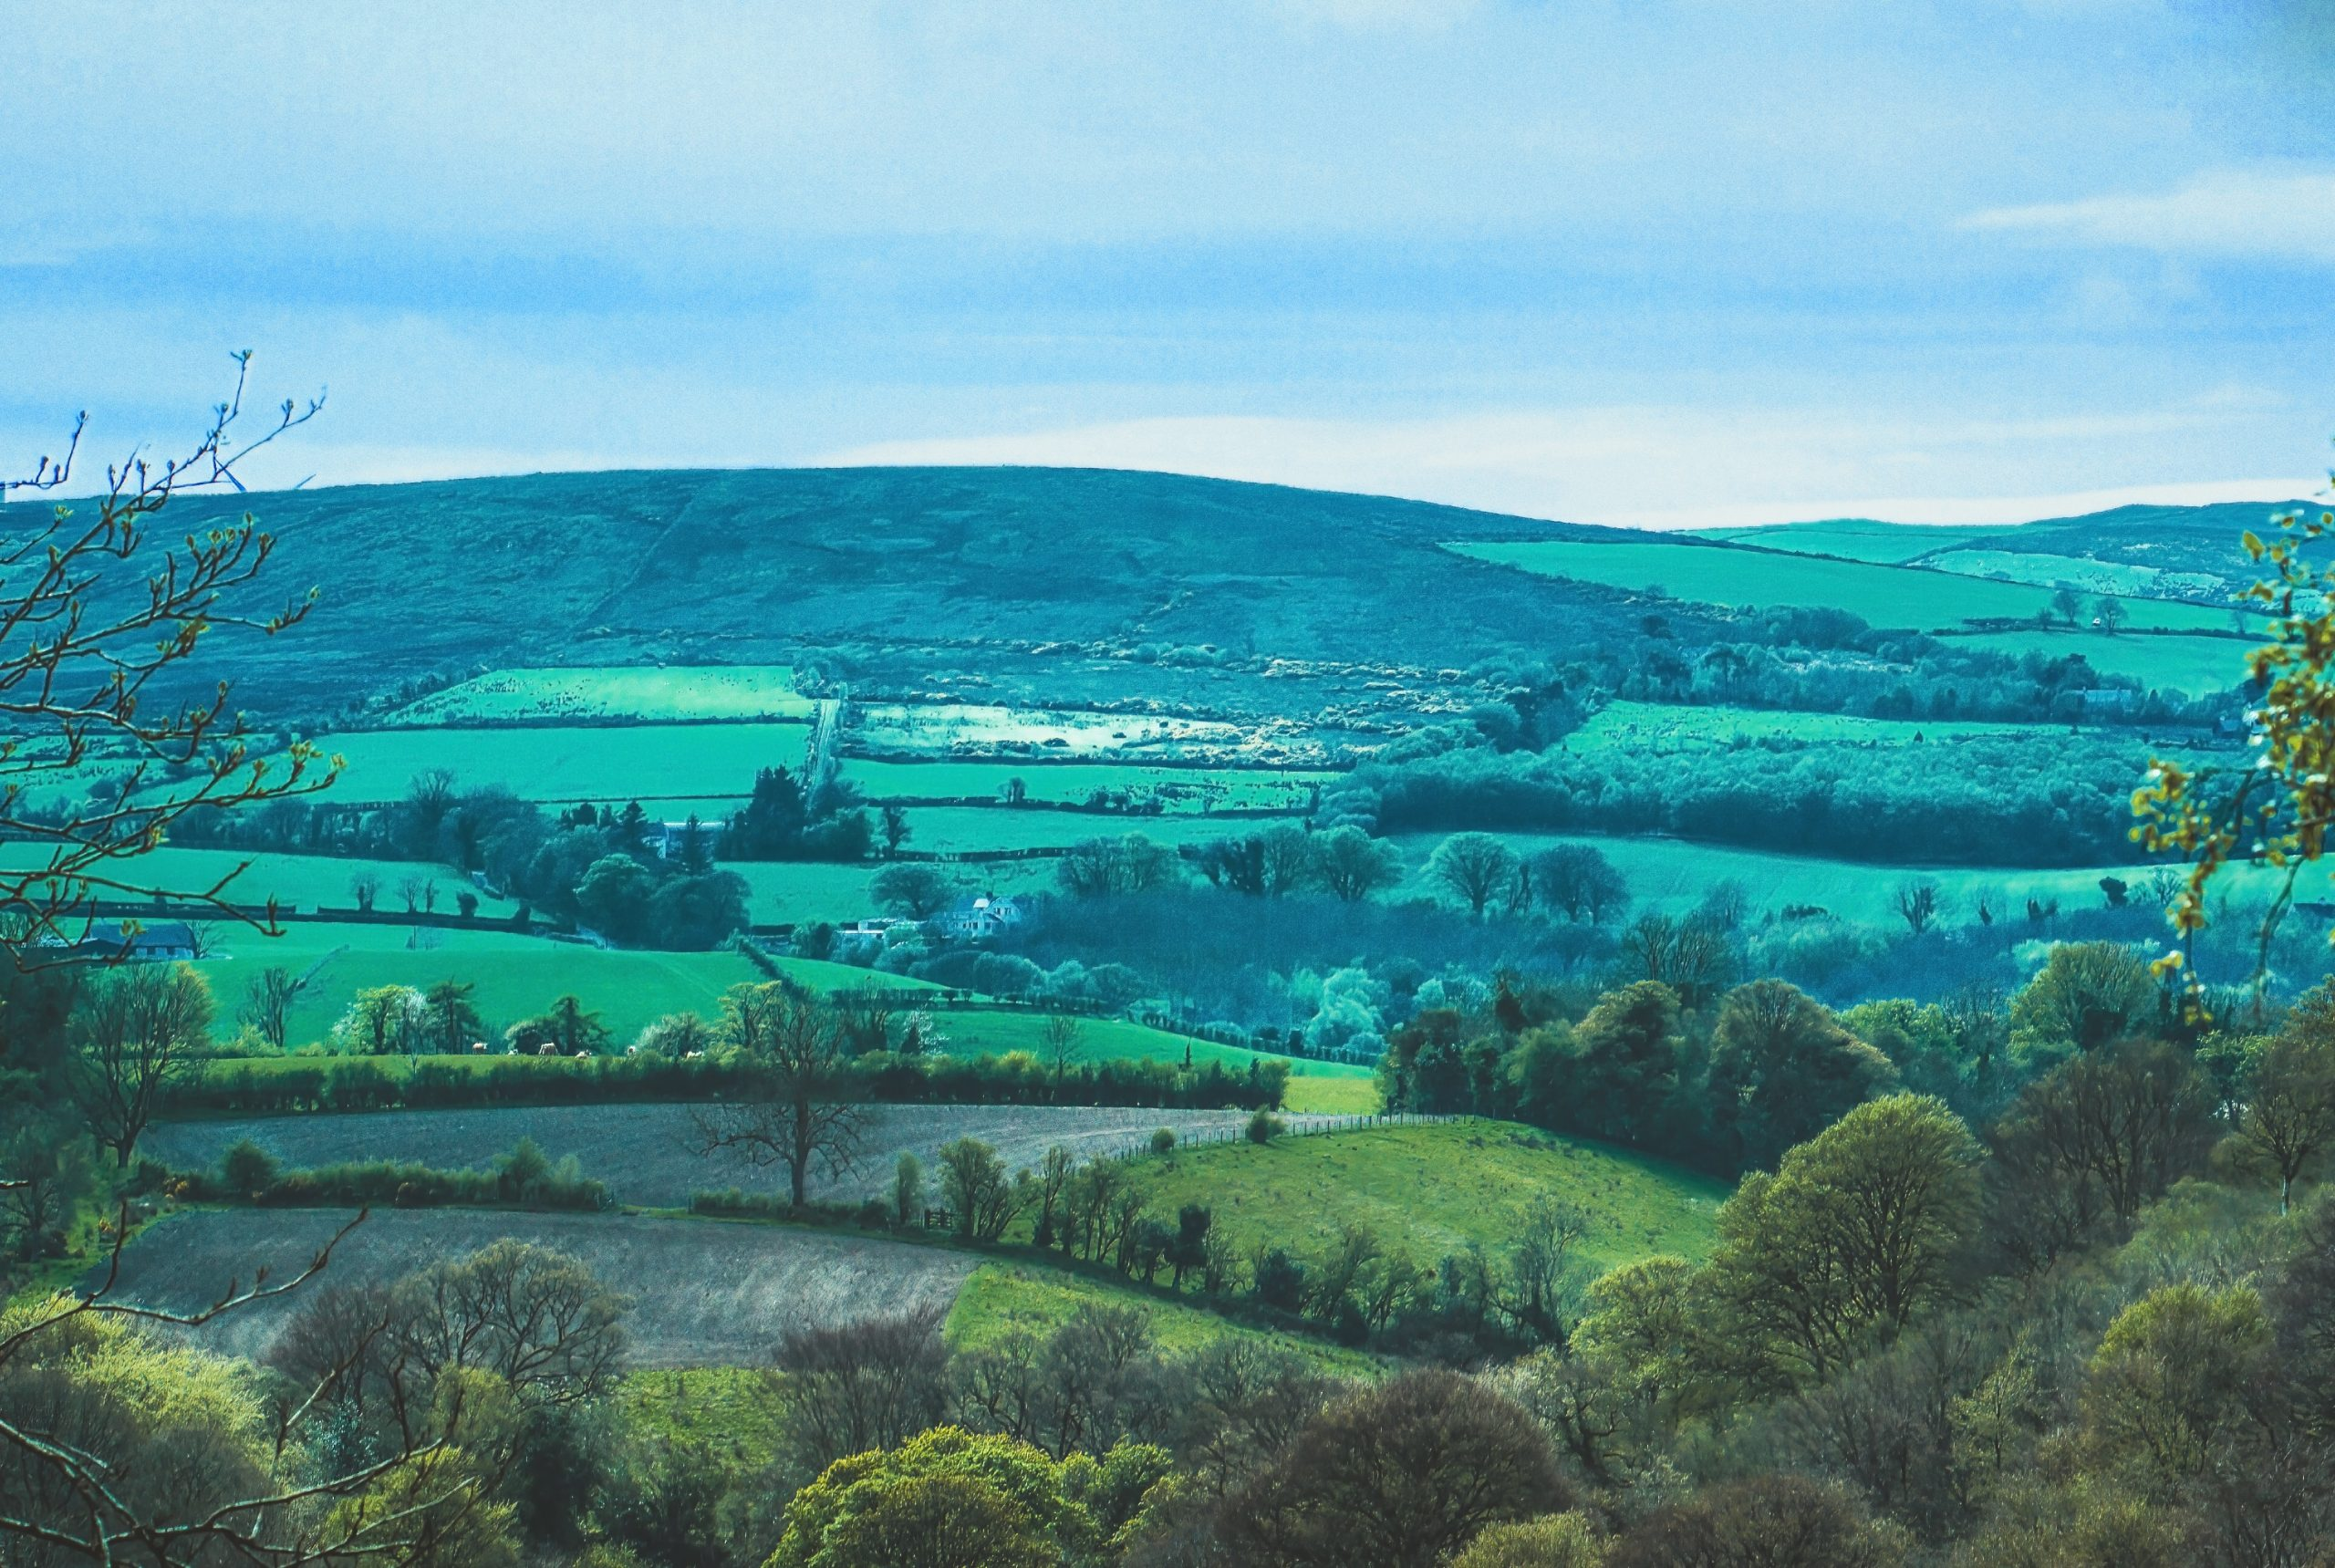 The Brexit Agreement and Regulatory Checks Affecting Northern Ireland